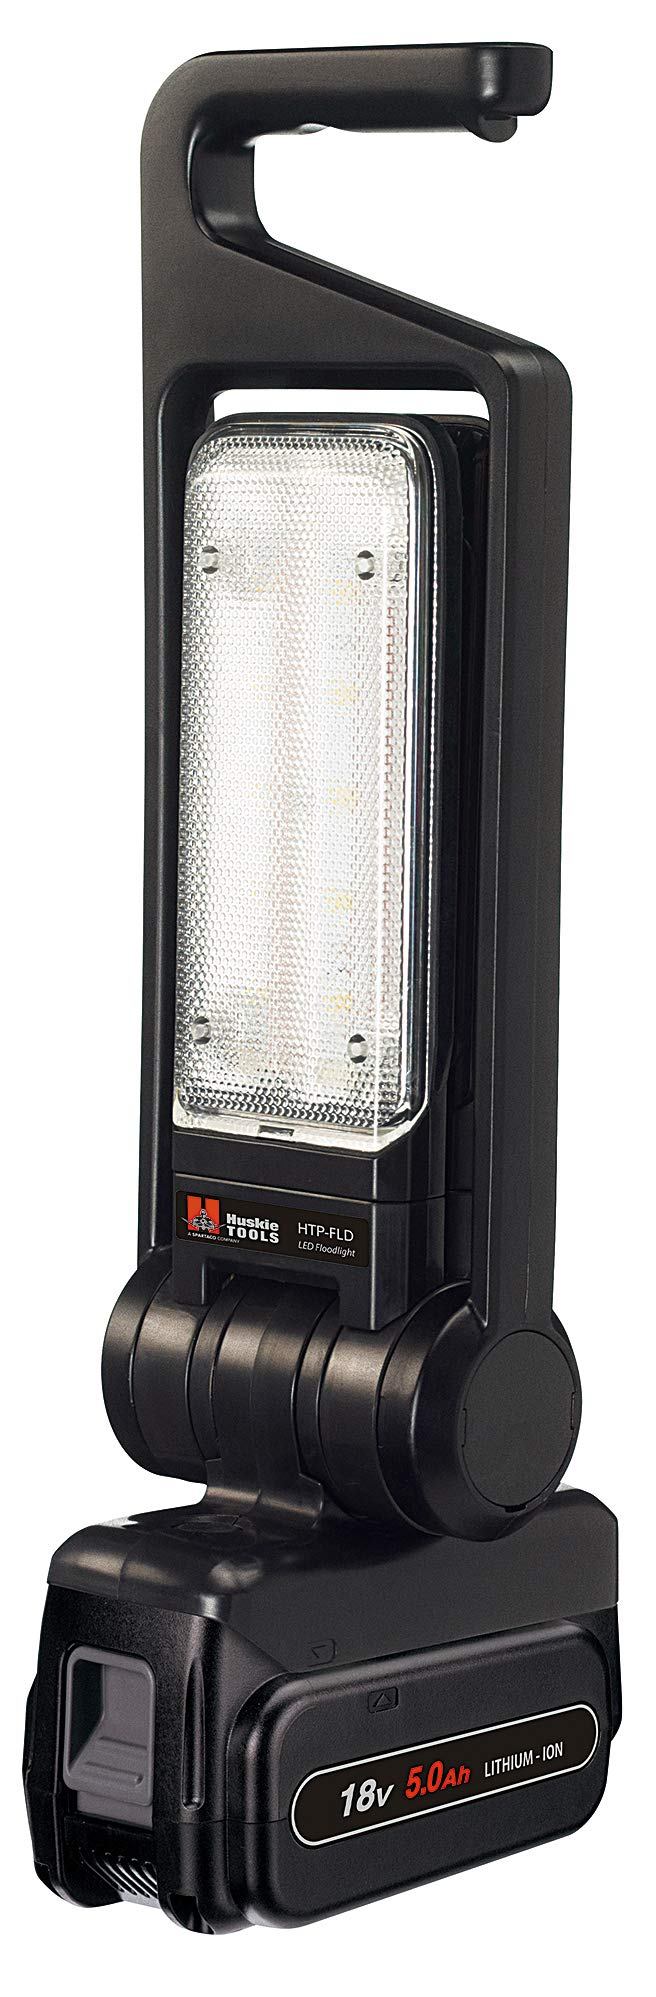 Huskie Tools HTP-FLD-1 Battery-Operated LED Flood Light with Battery and Charger